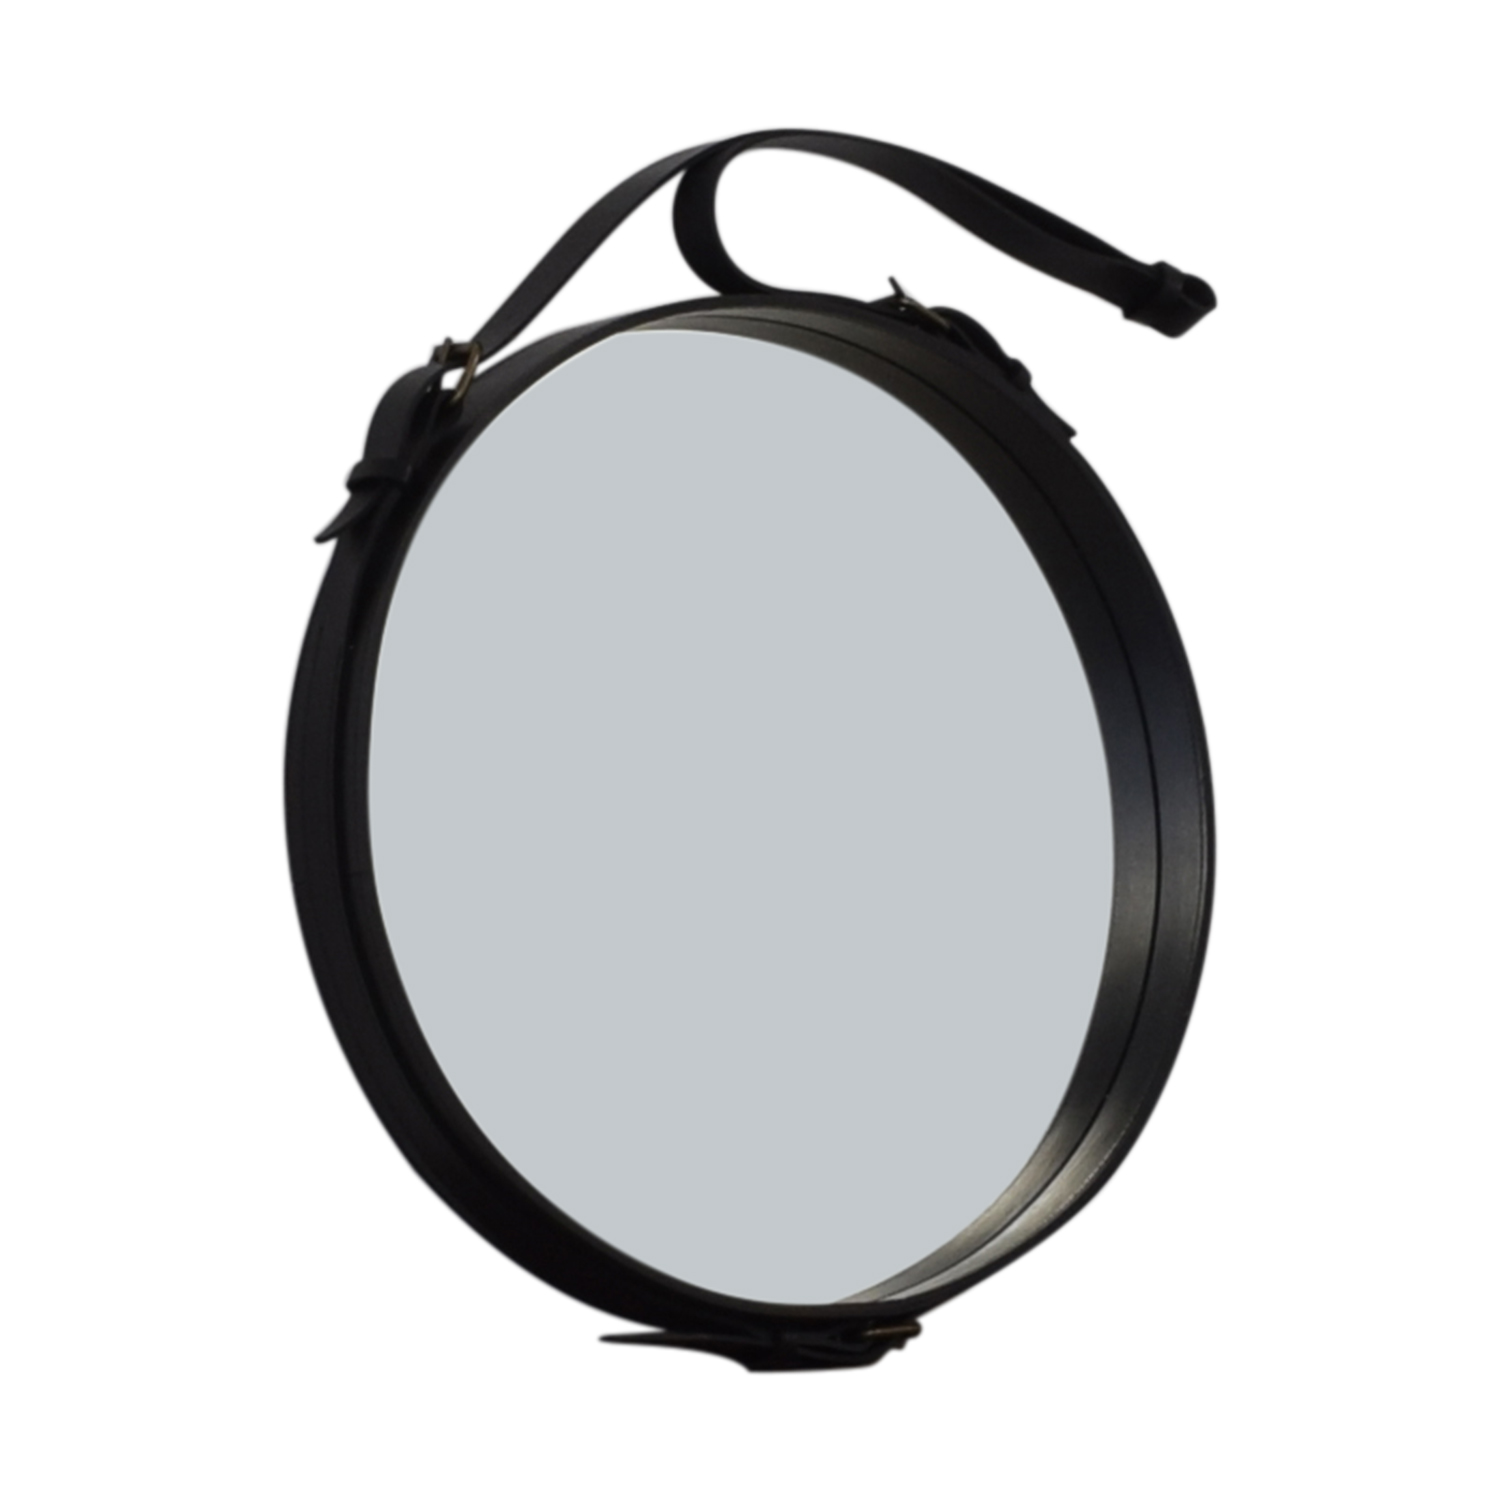 Circular Hanging Mirror with Leather Strap Frame dimensions